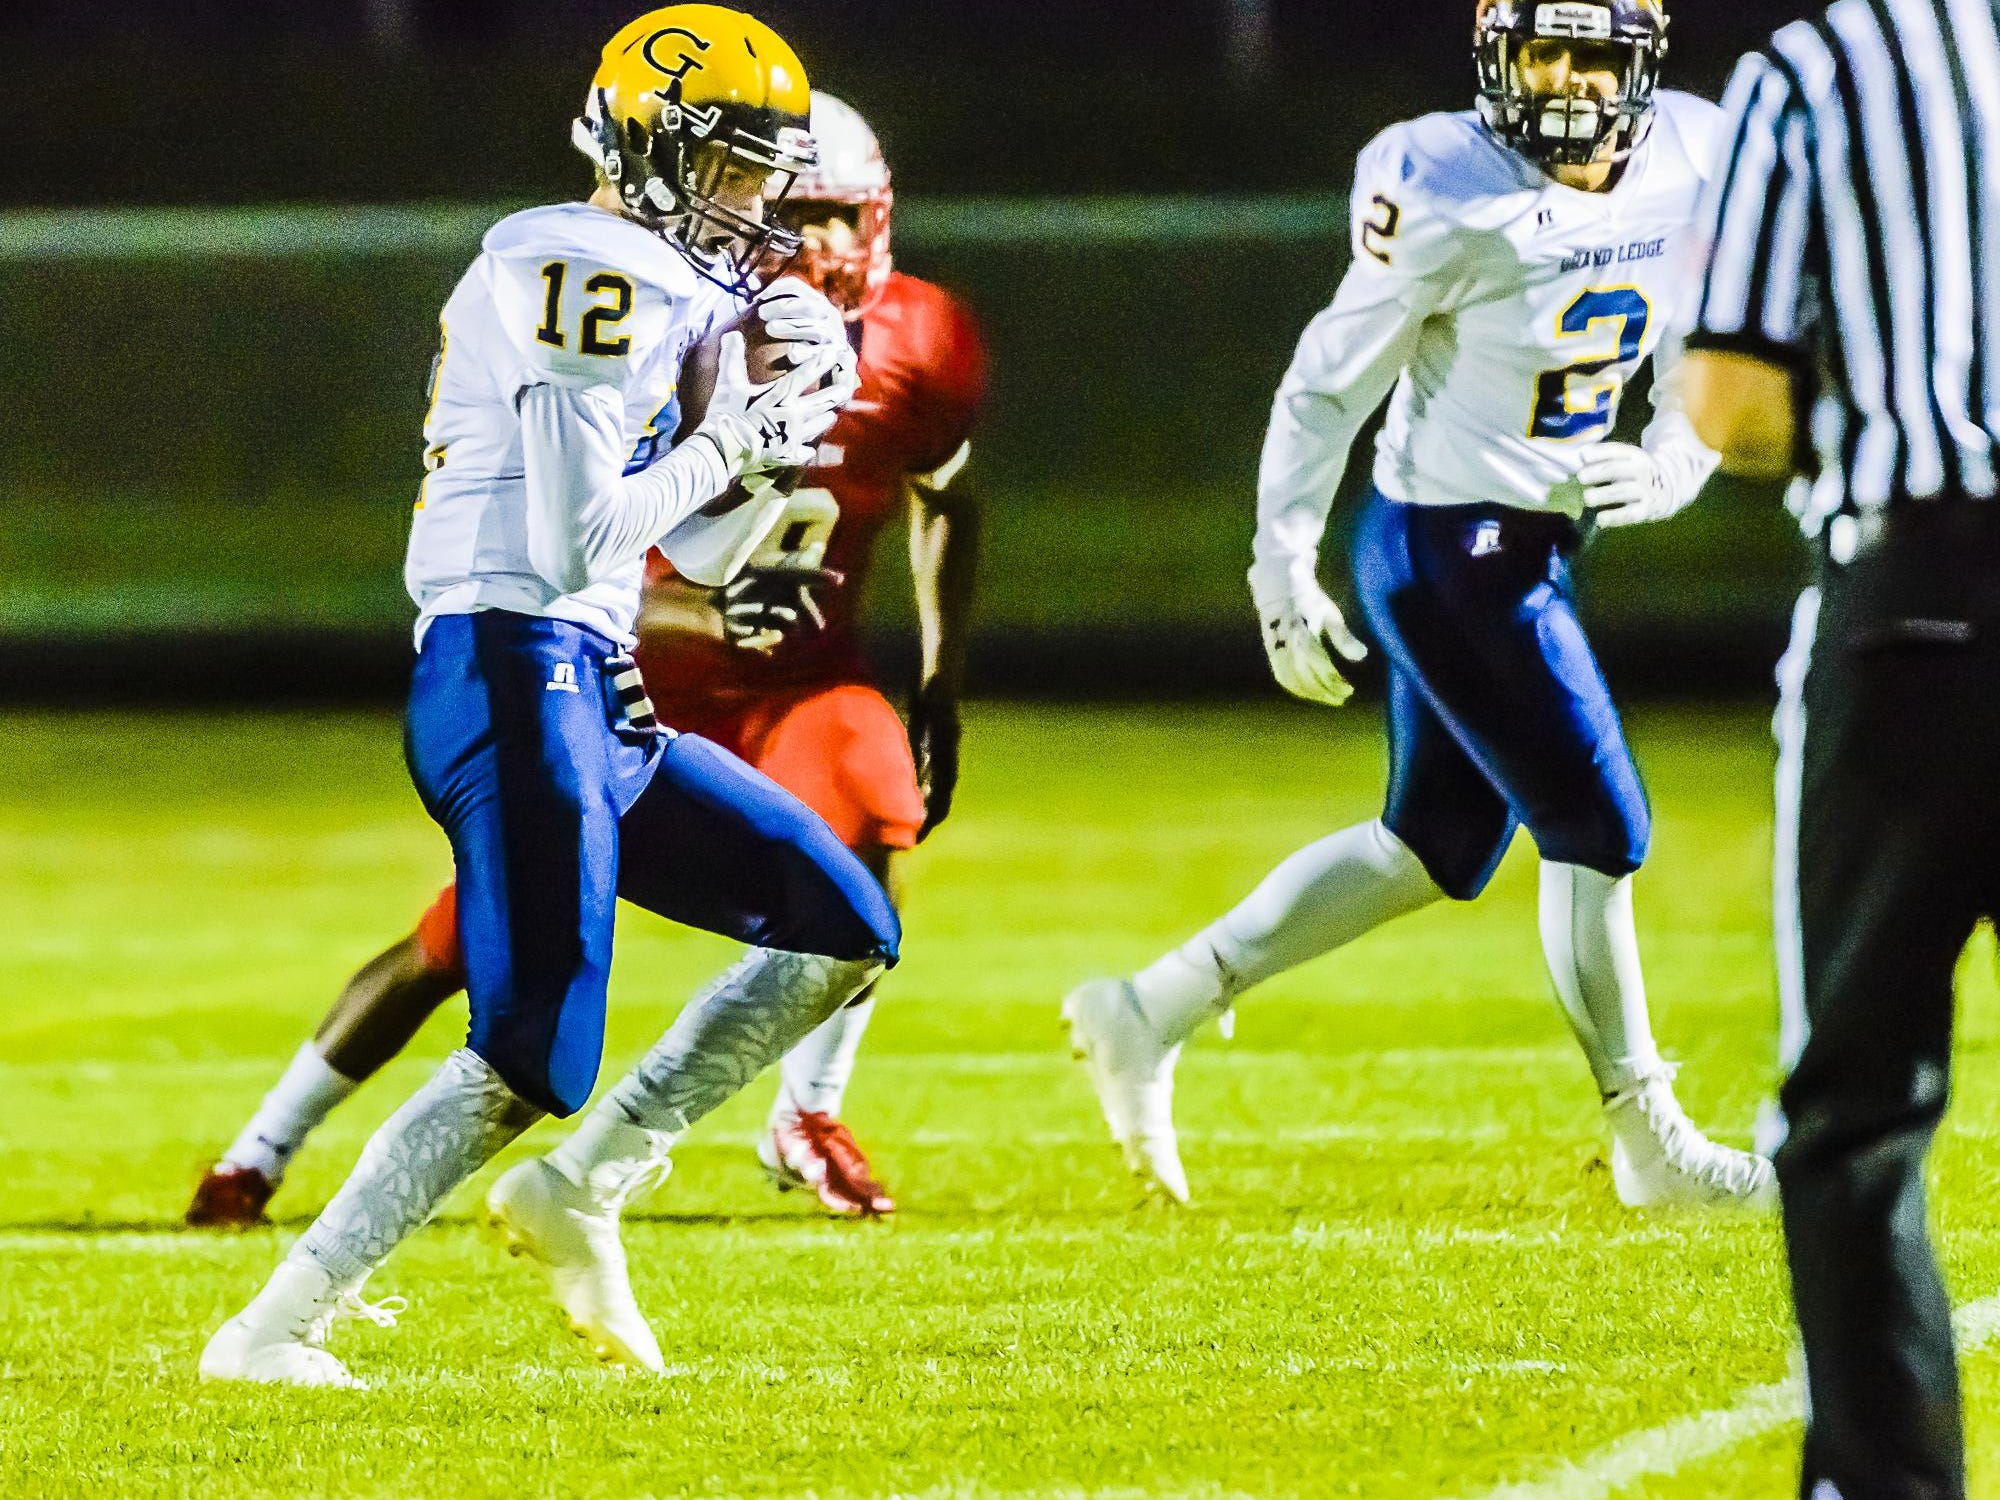 Luke Lalumia's kickoff return for a score helped special teams play make a difference for Grand Ledge in its victory over Sexton.